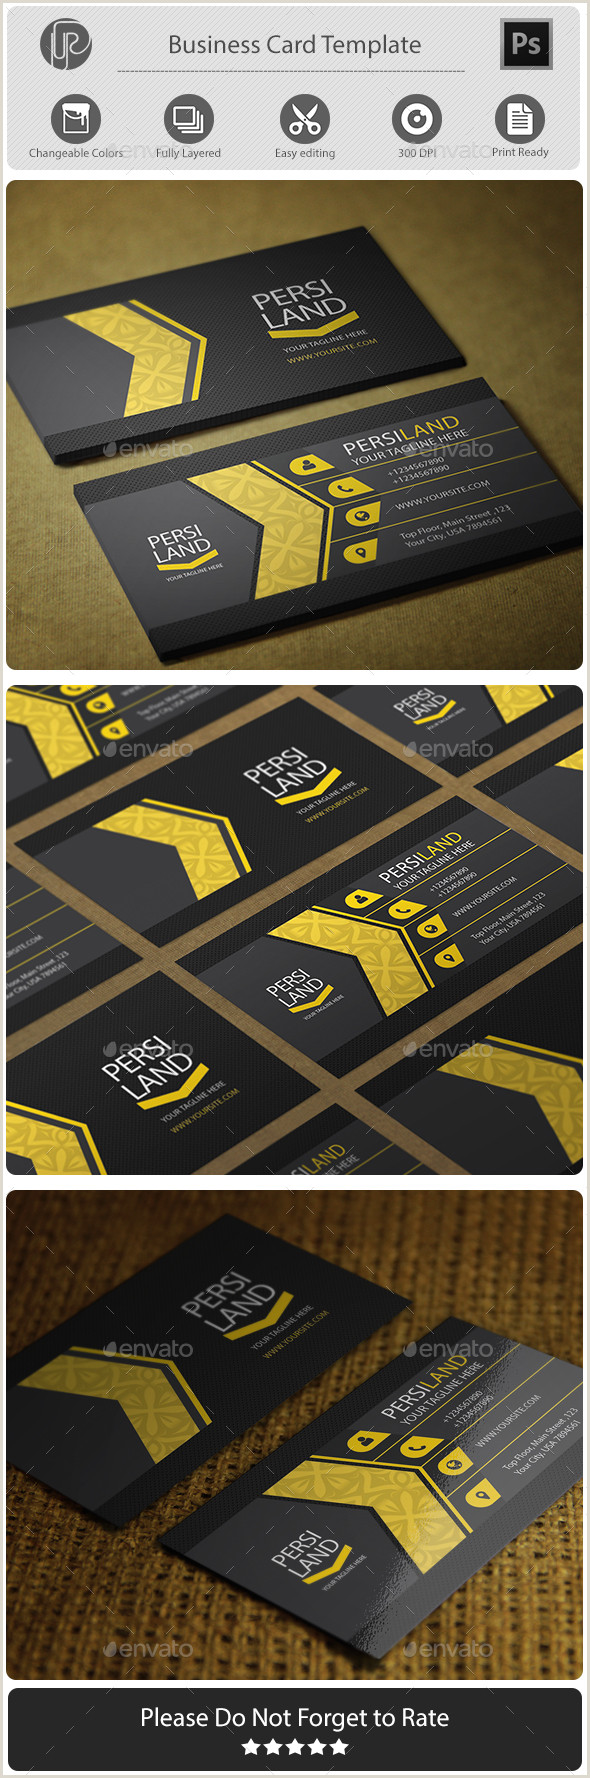 Personal Business Card Templates Personal Business Card Templates & Designs From Graphicriver